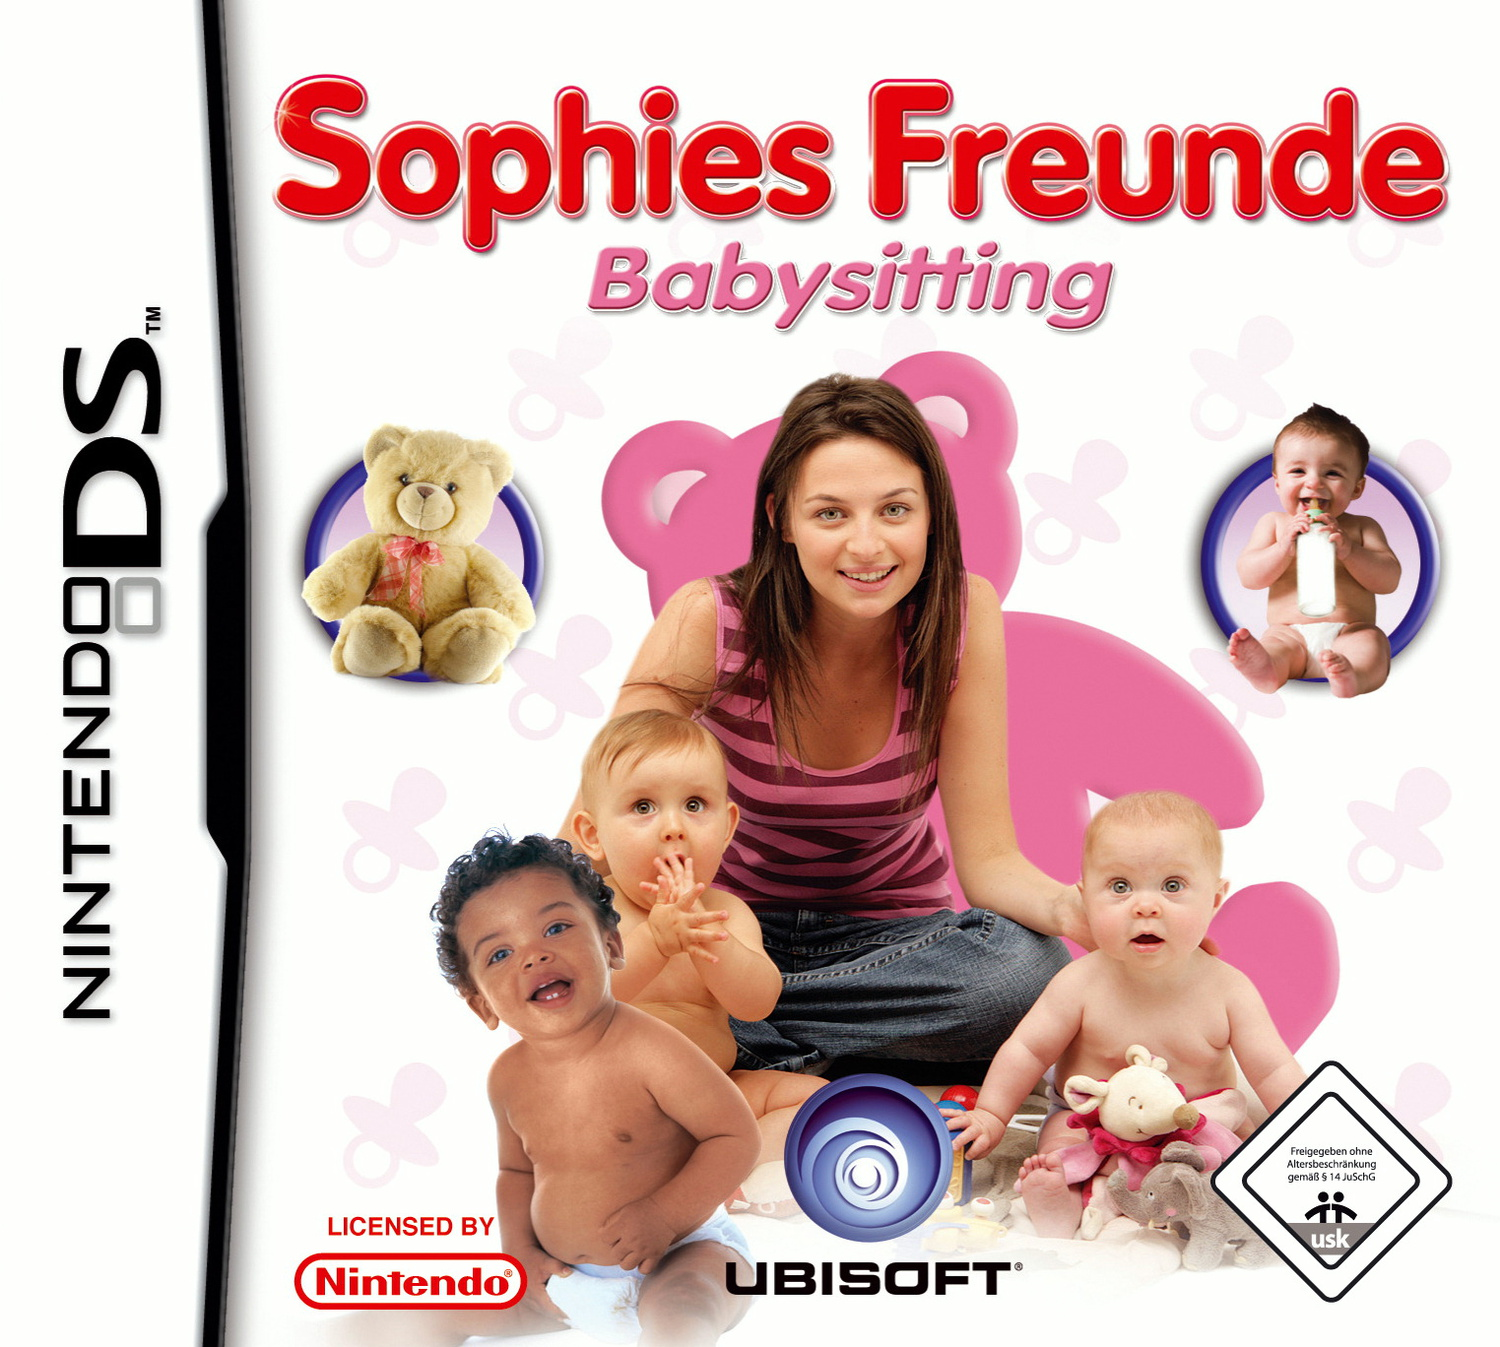 Sophies Freunde: Babysitting